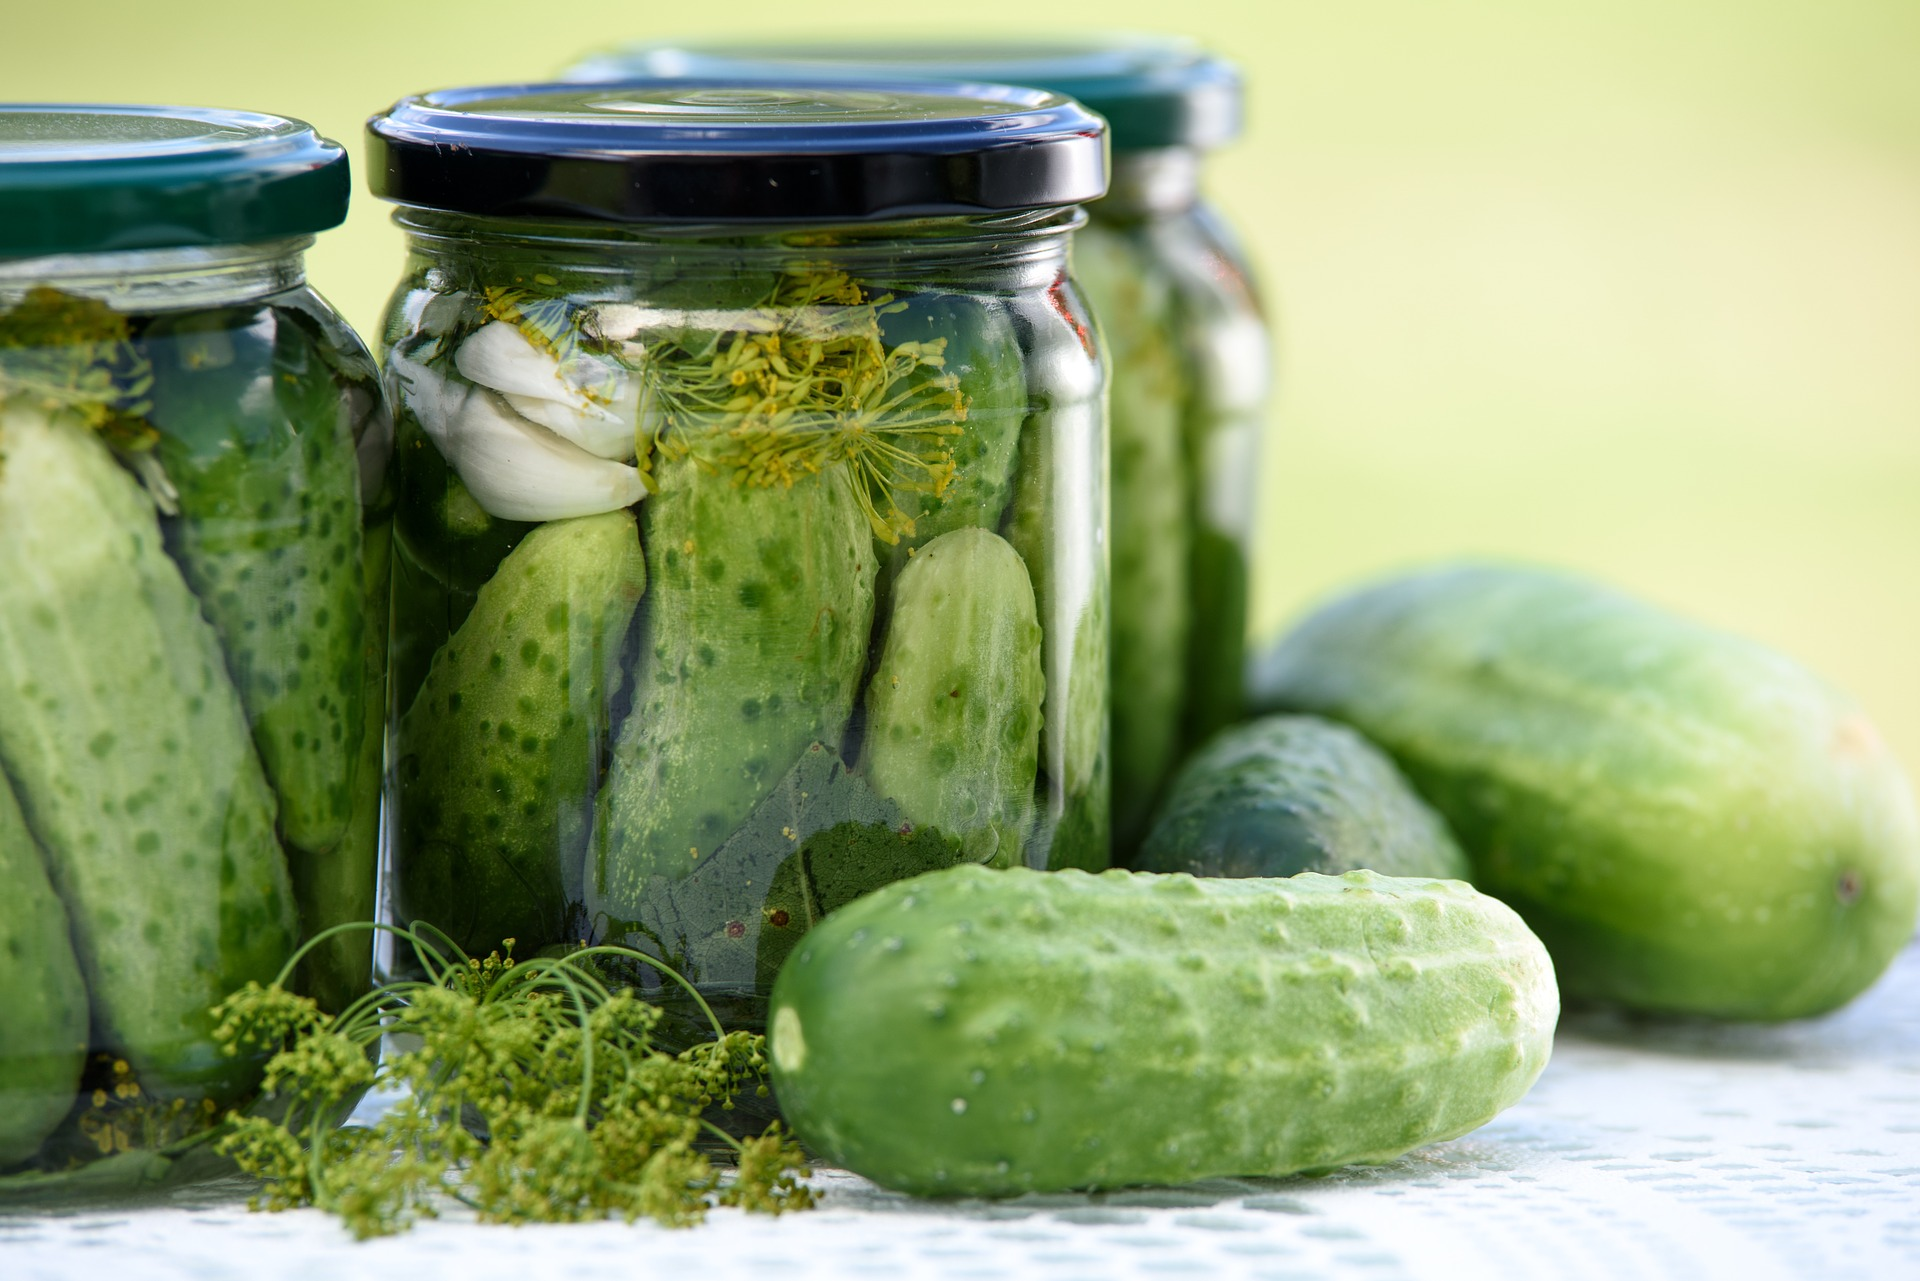 Pickled Cucumbers in Jar Outdoors